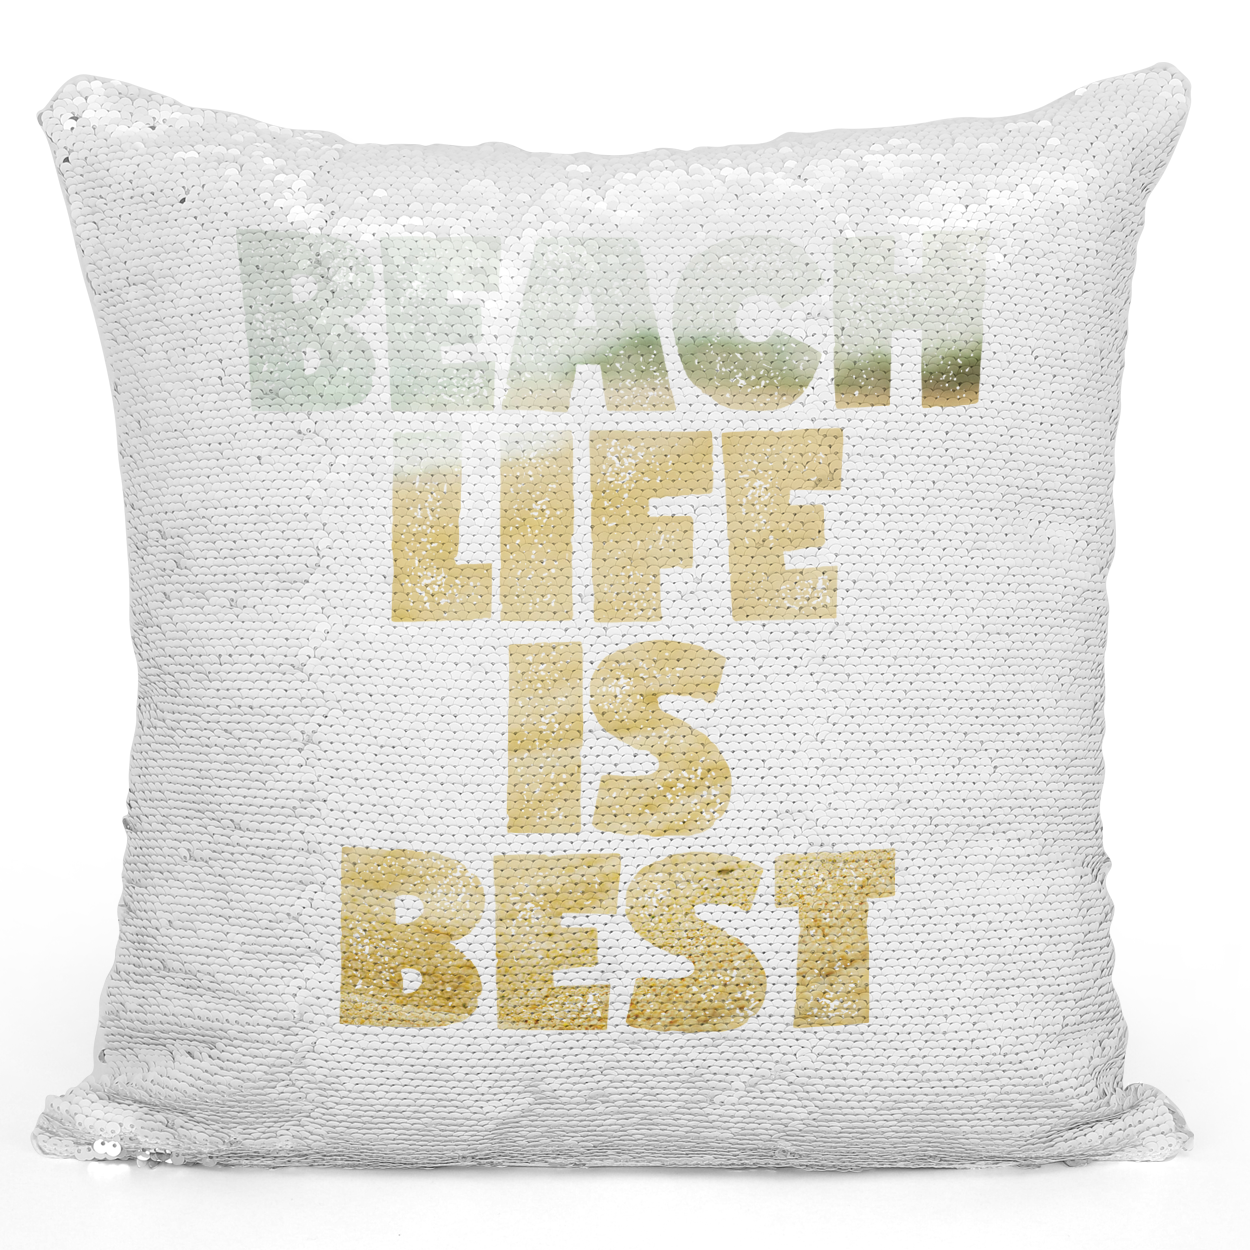 Sequin Pillow Magic Mermaid Throw Pillow Beach Life Is Best Summer Vacation House Pillow - Pure White Printed 16 x 16 inch Square Home Decor Couch Pillow Loud Universe